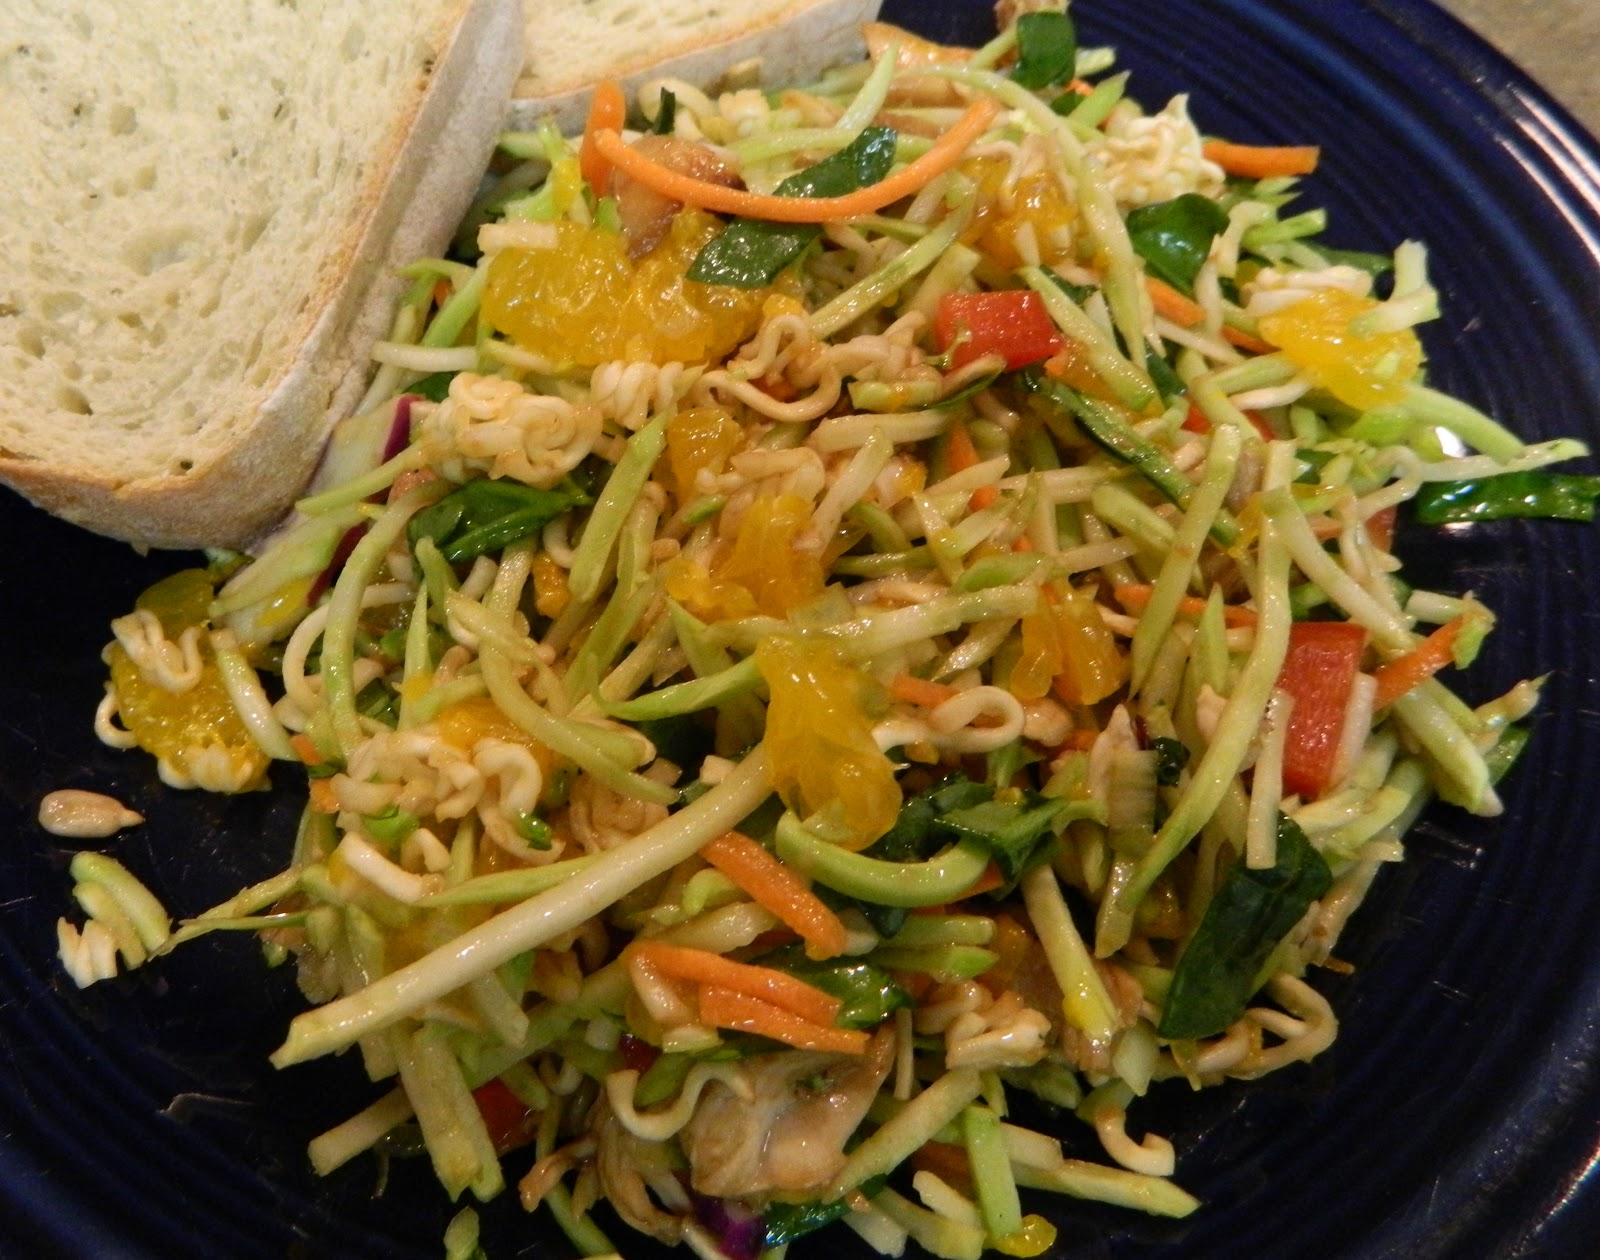 Baking with Love: Crunchy Asian Chicken Salad